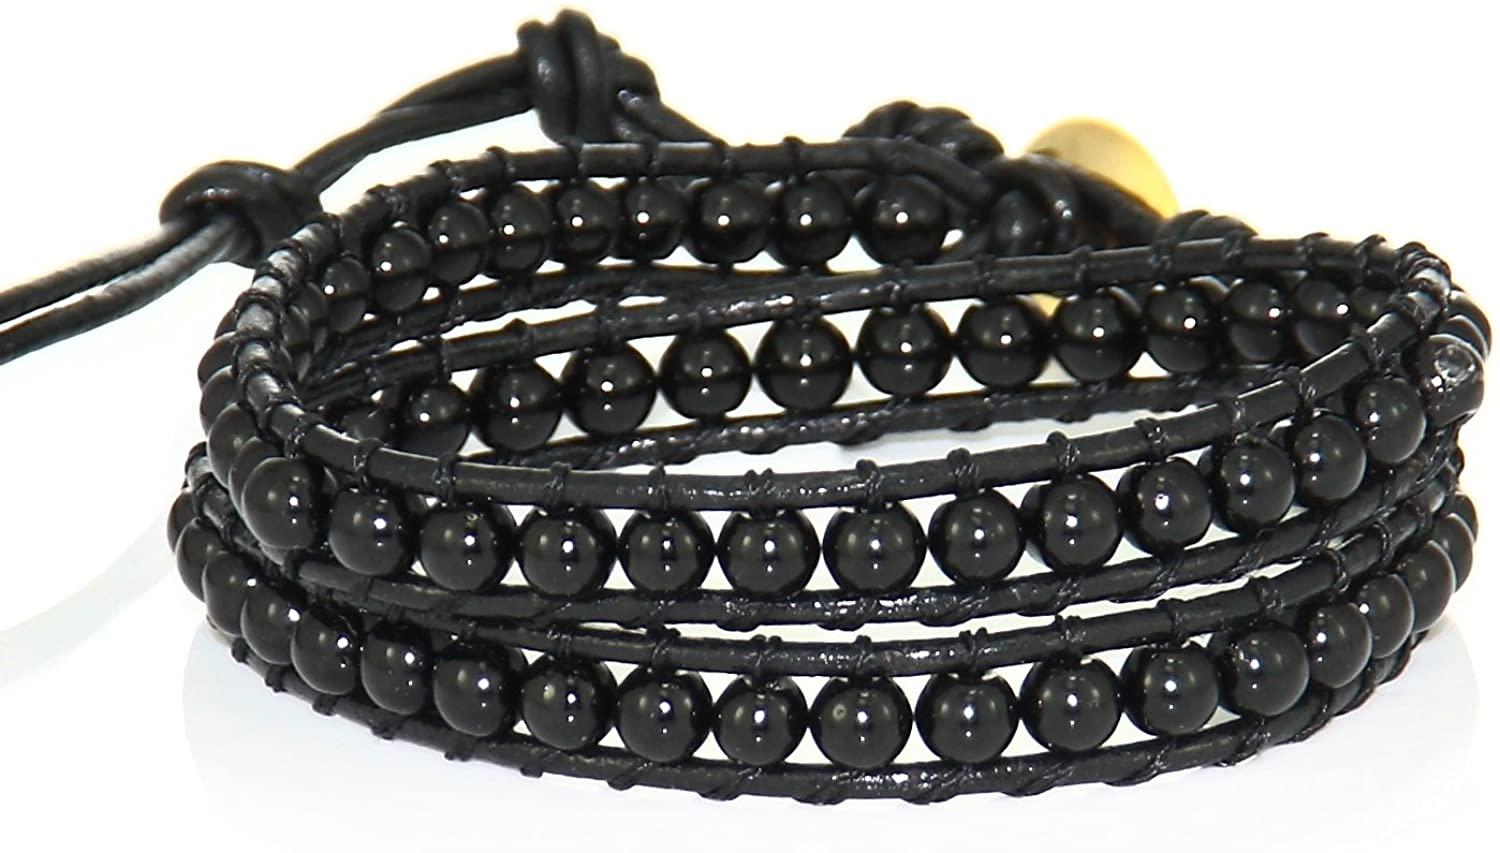 Fonhop Black Natural Agate Woven Bracelet with Gold-plated Button, 4mm Bead, 2 Wires